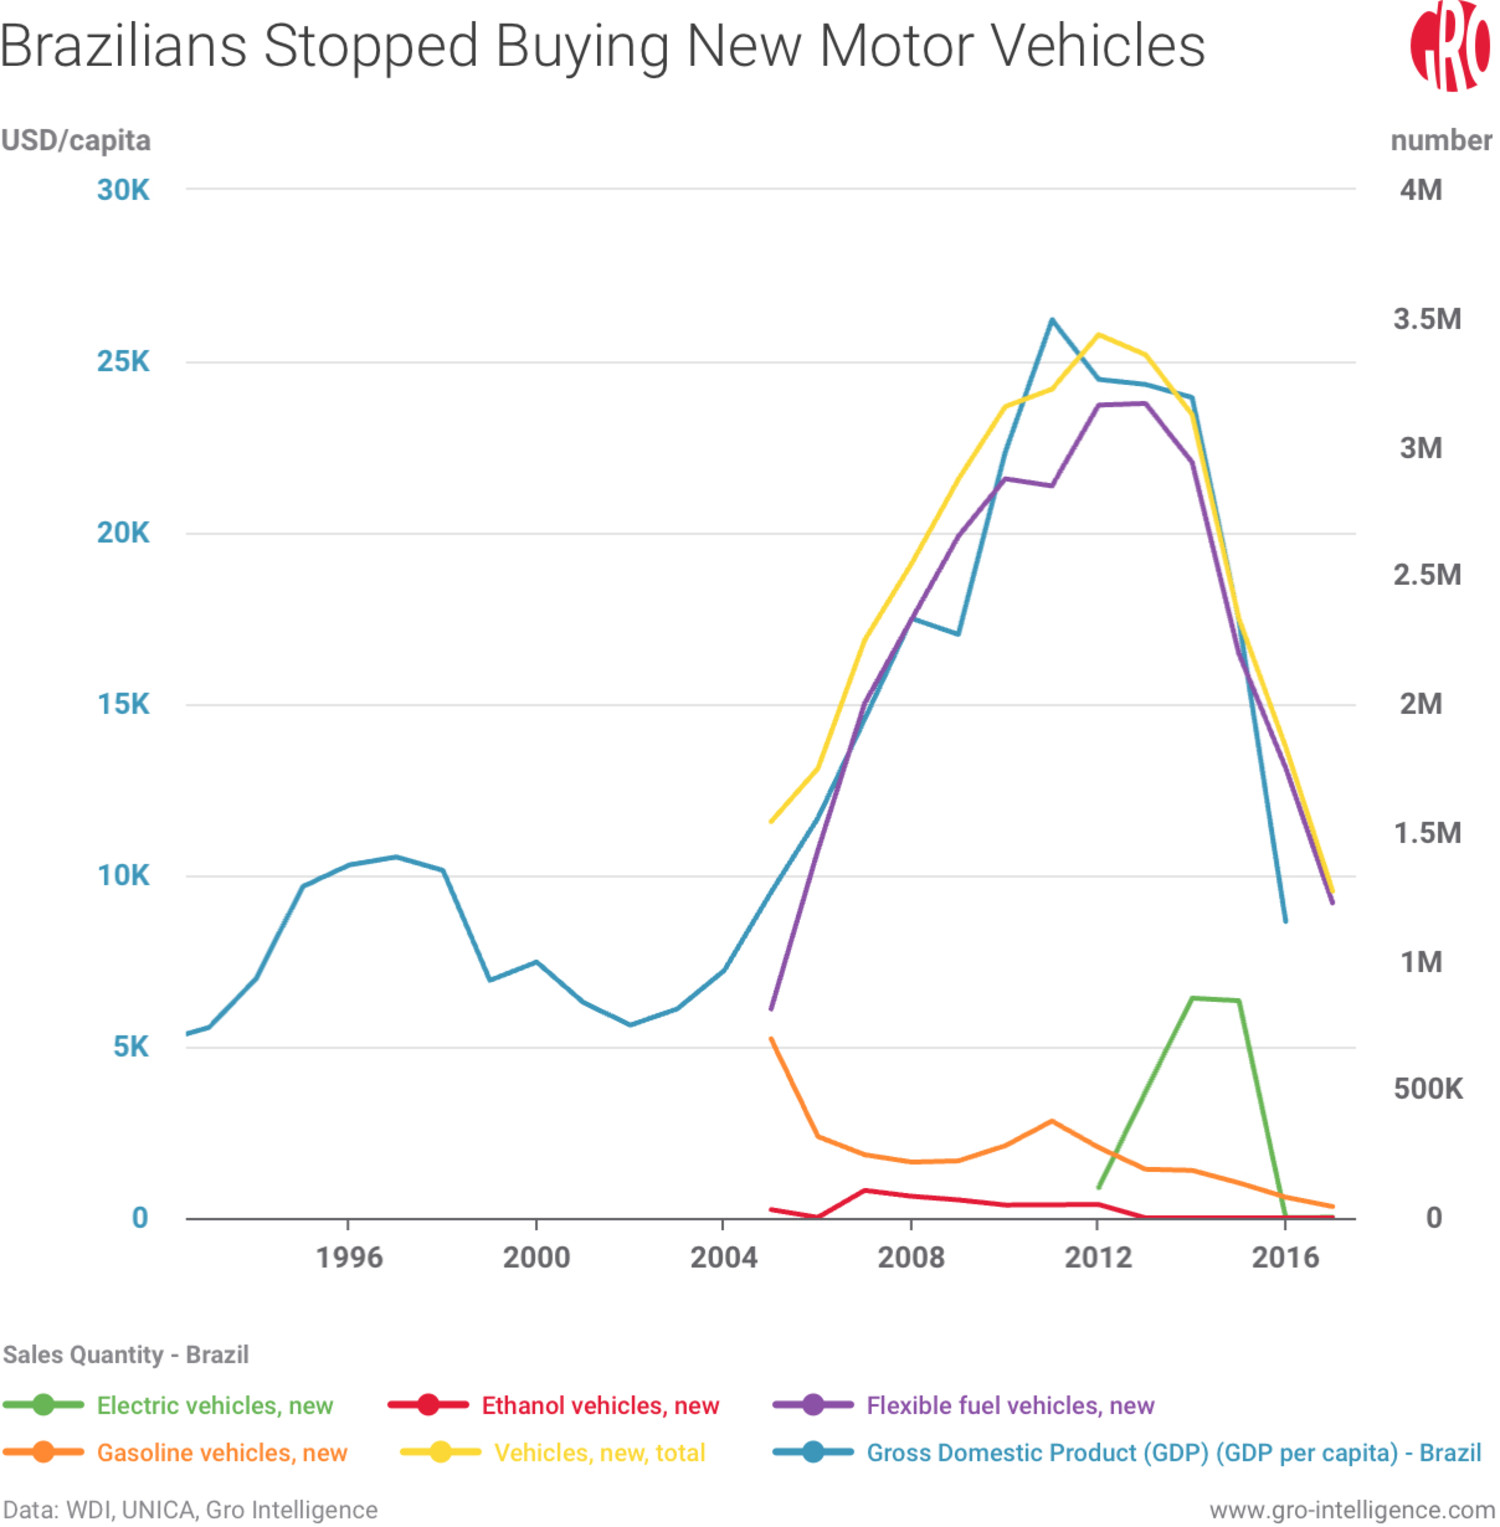 Brazilians Stopped Buying New Motor Vehicles